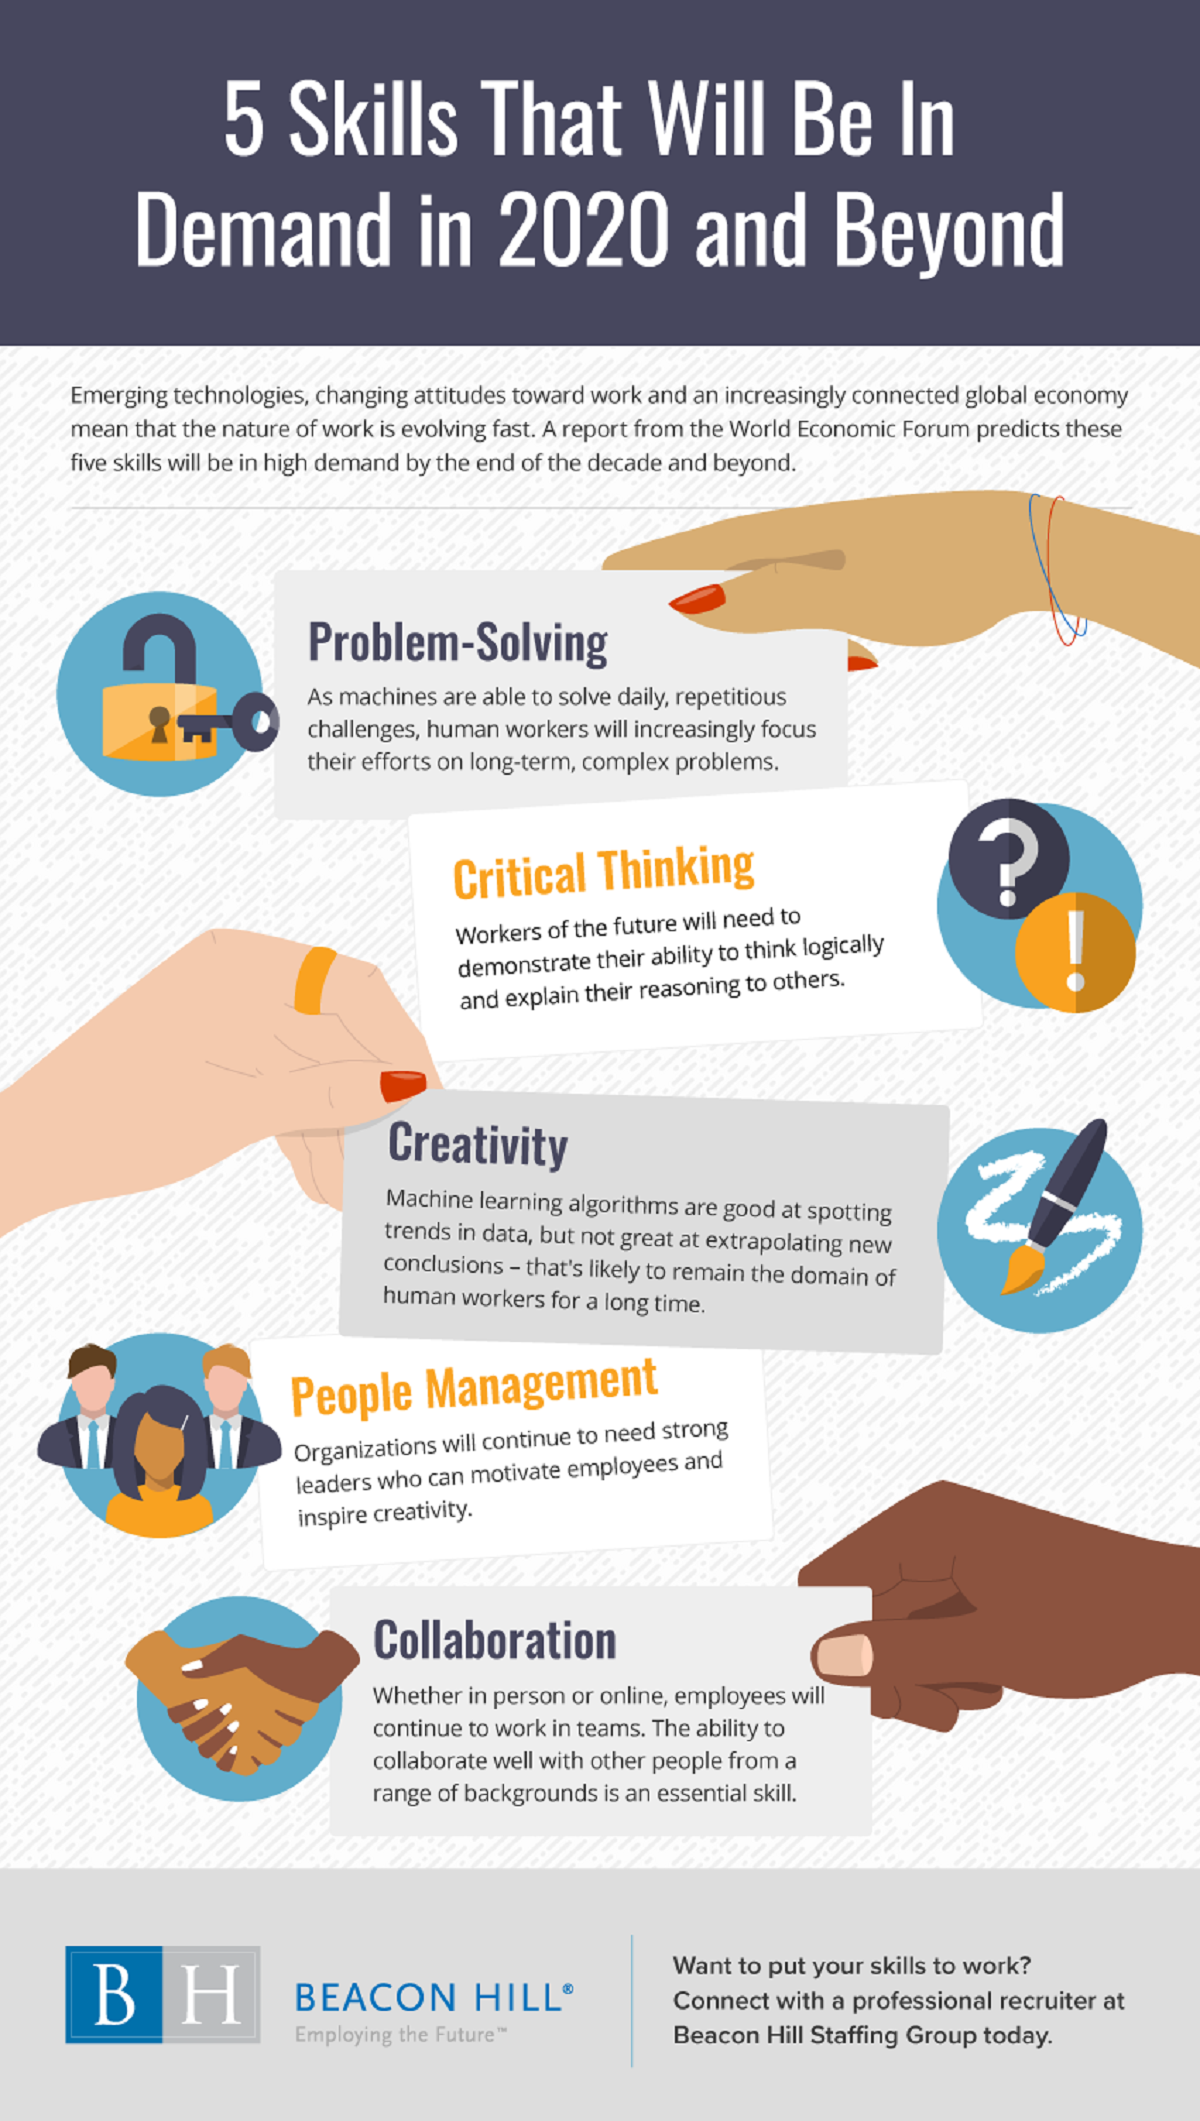 5 Skills That Will Be In Demand in 2020 and Beyond #infographic